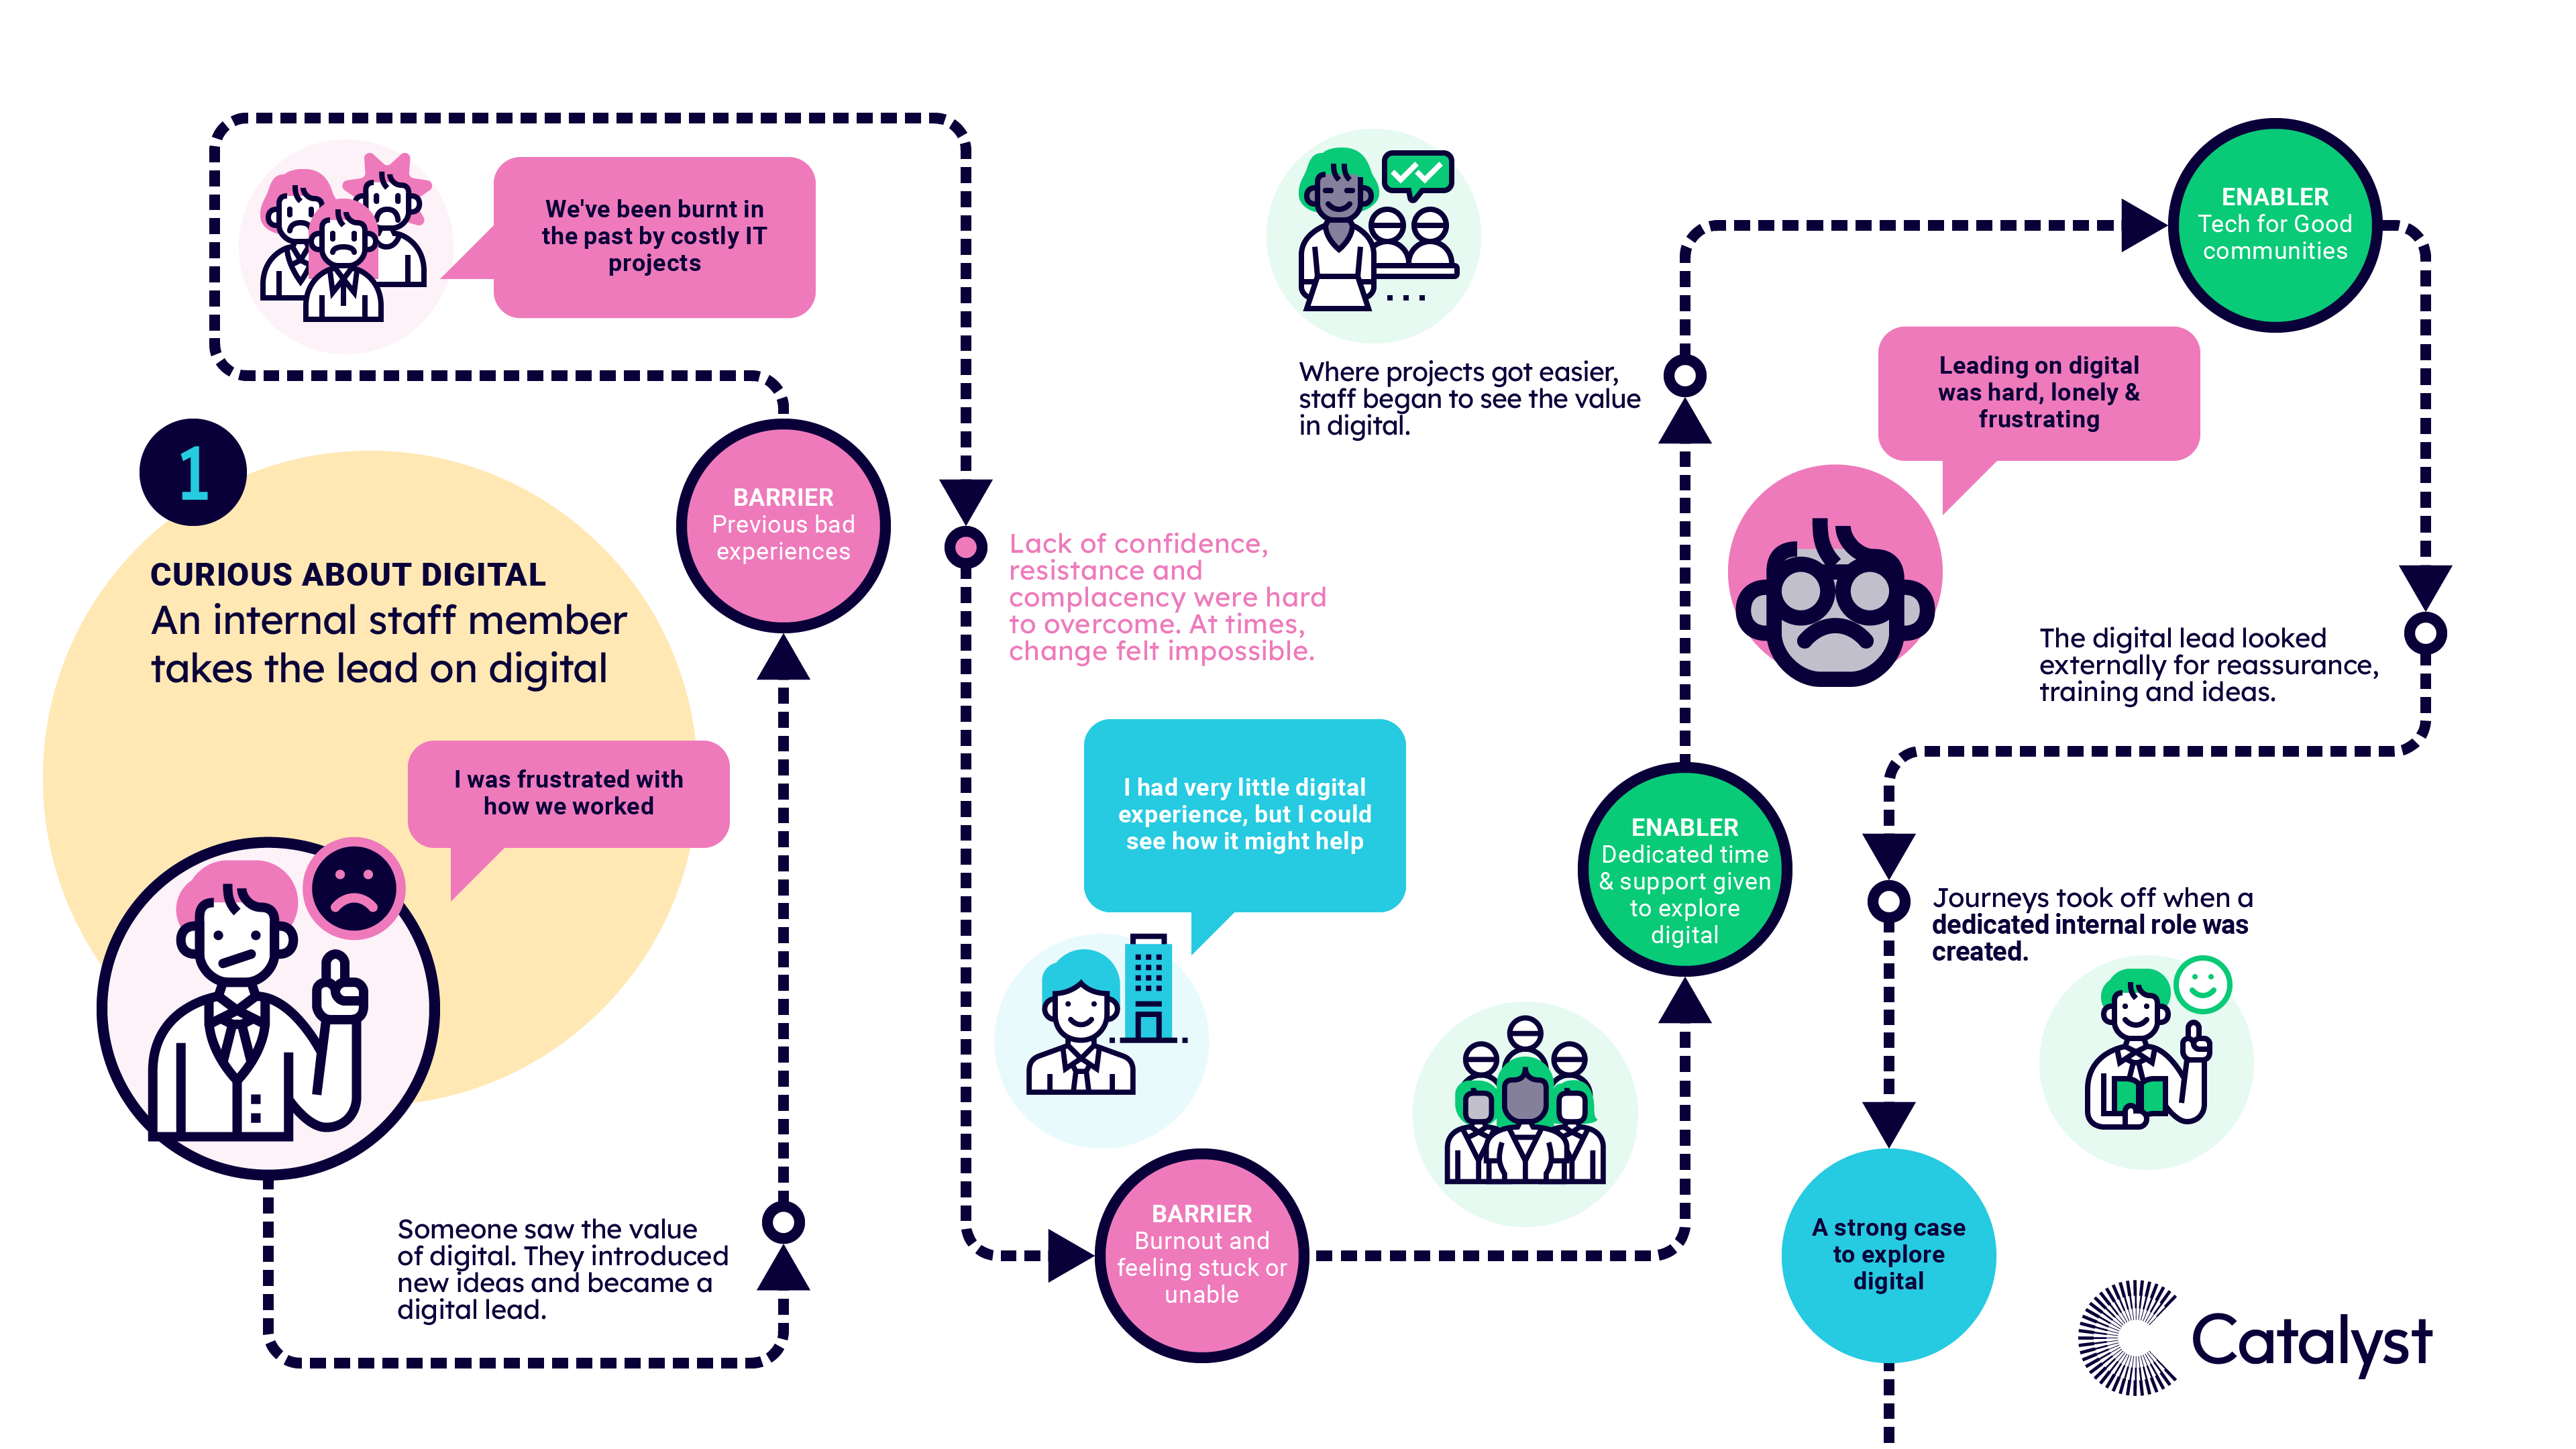 A visual map of pattern 1, when charities were at the curious stage and an individual staff member takes the lead on digital. The text highlights the most common experiences, risk factors, barriers and enablers at this stage of the journey.